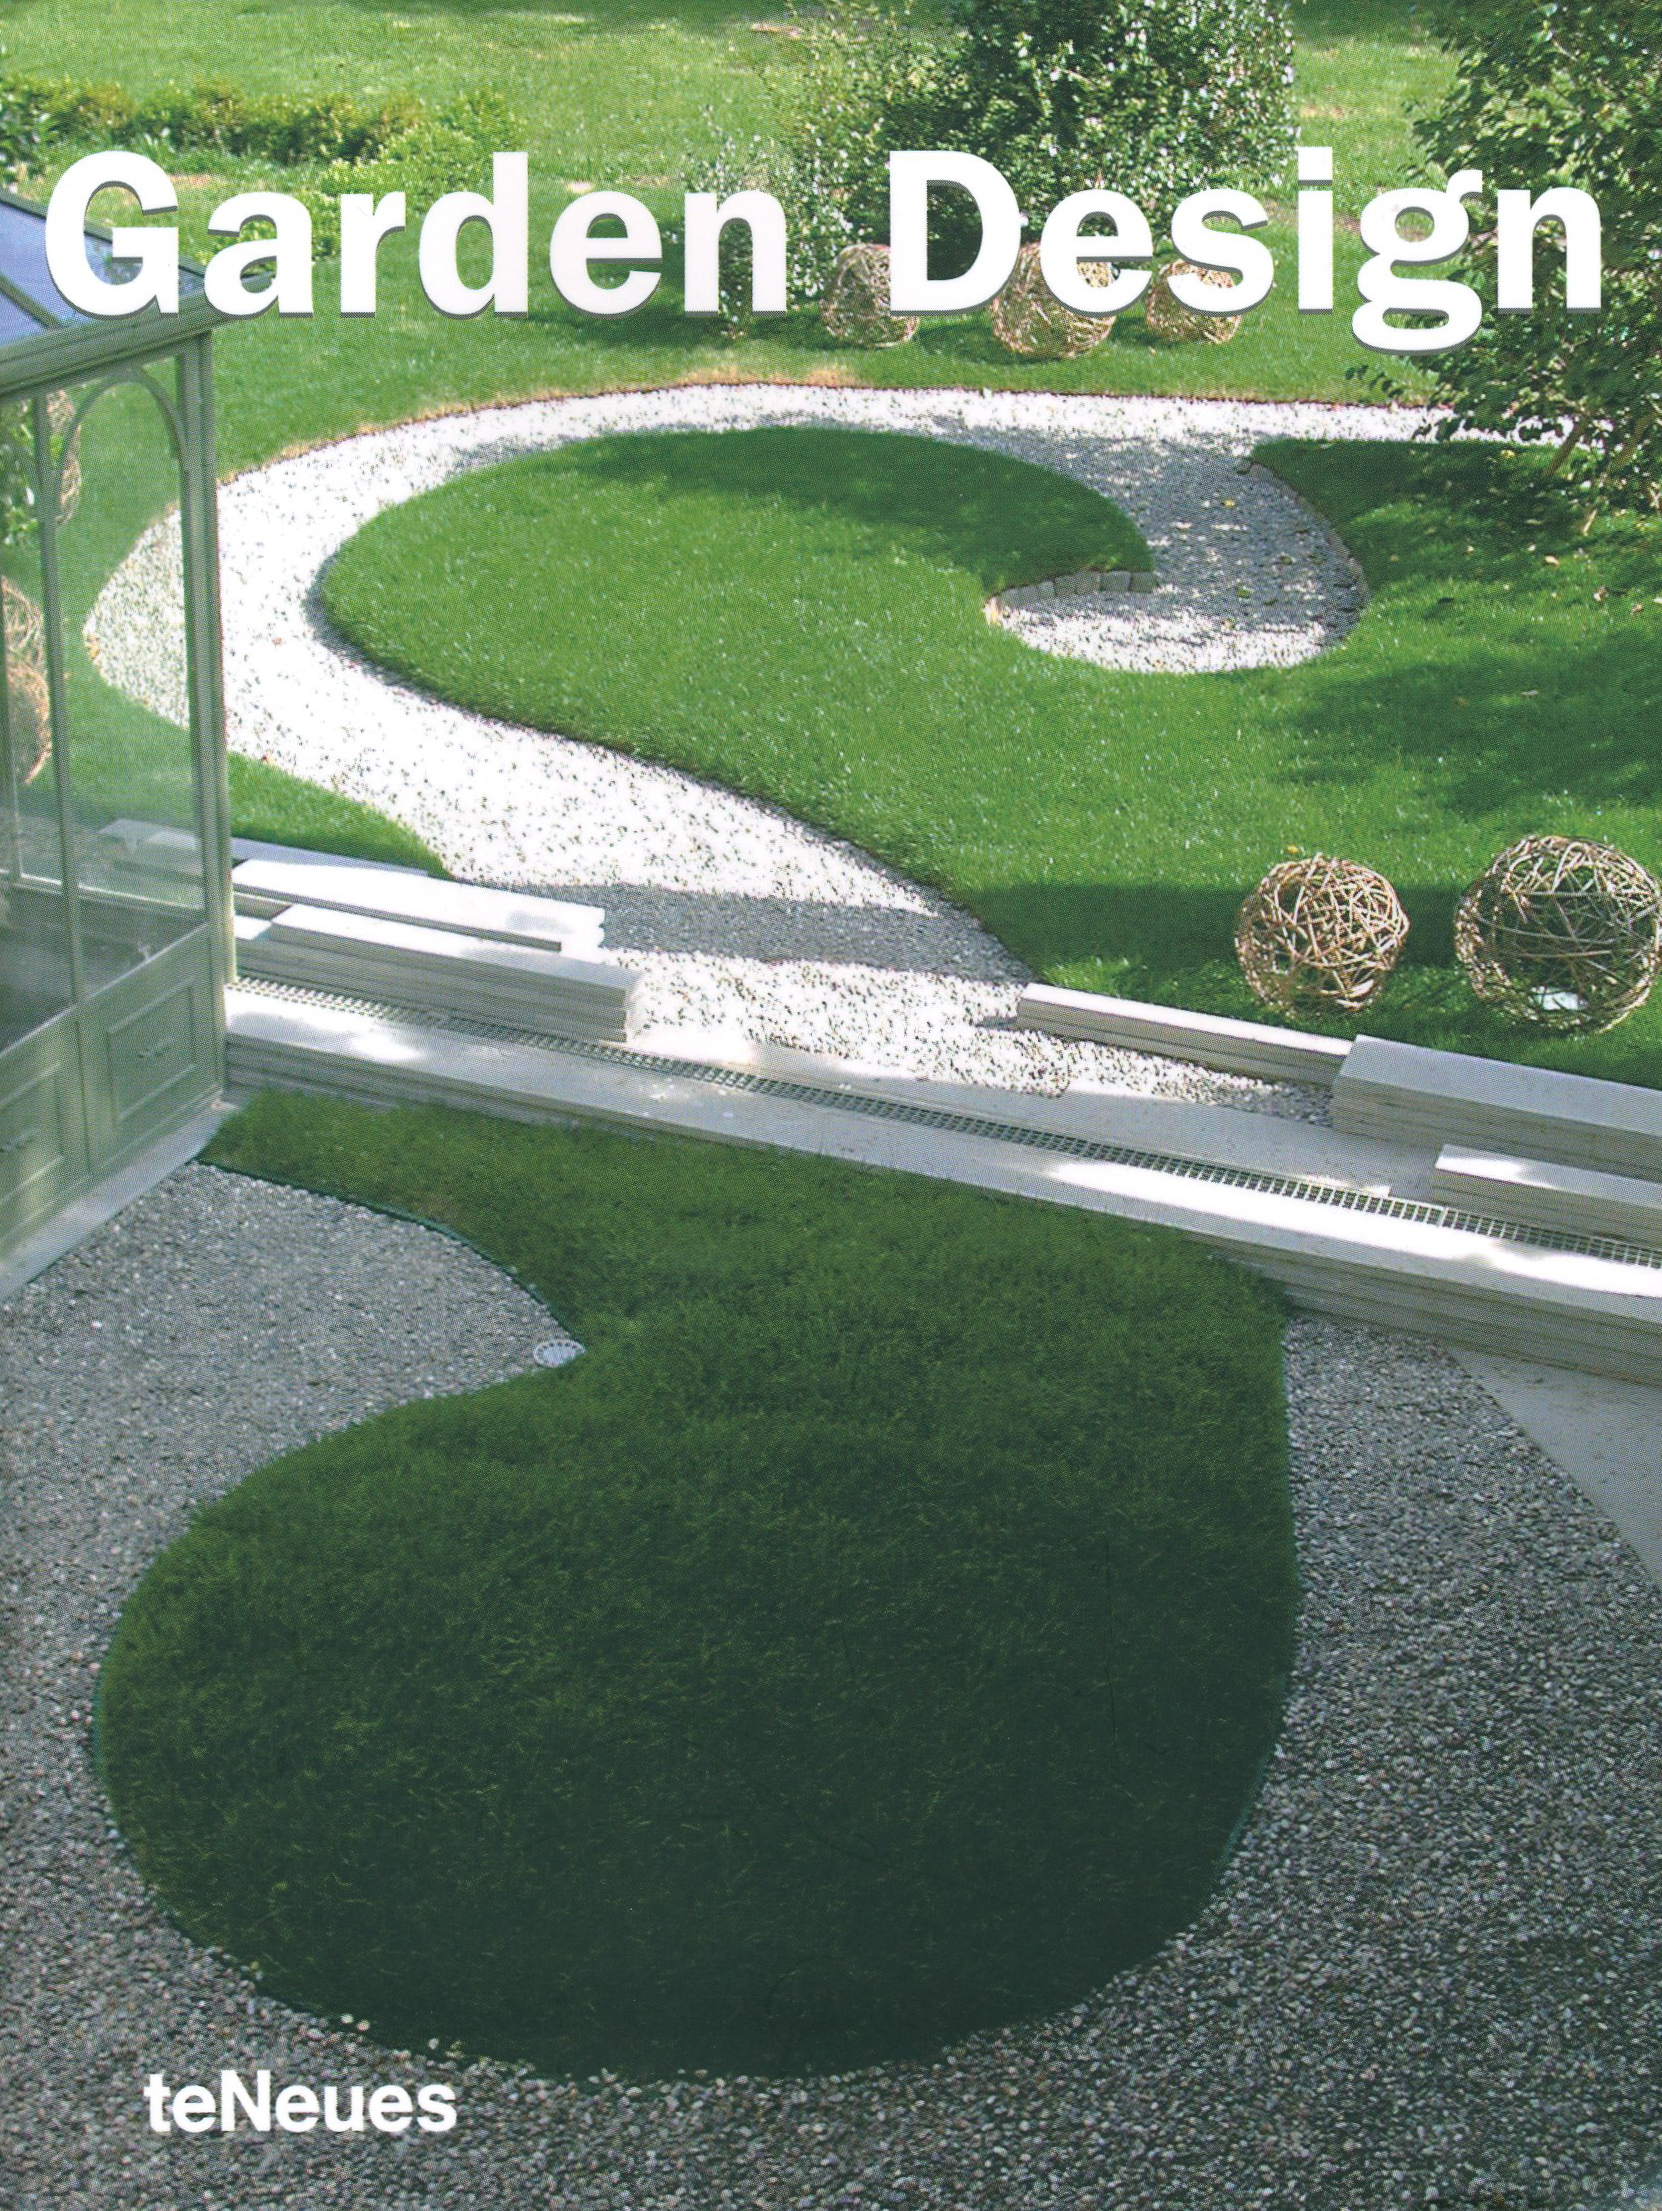 Garden Design Garden Design with Landscape Design Books Pdf PDF